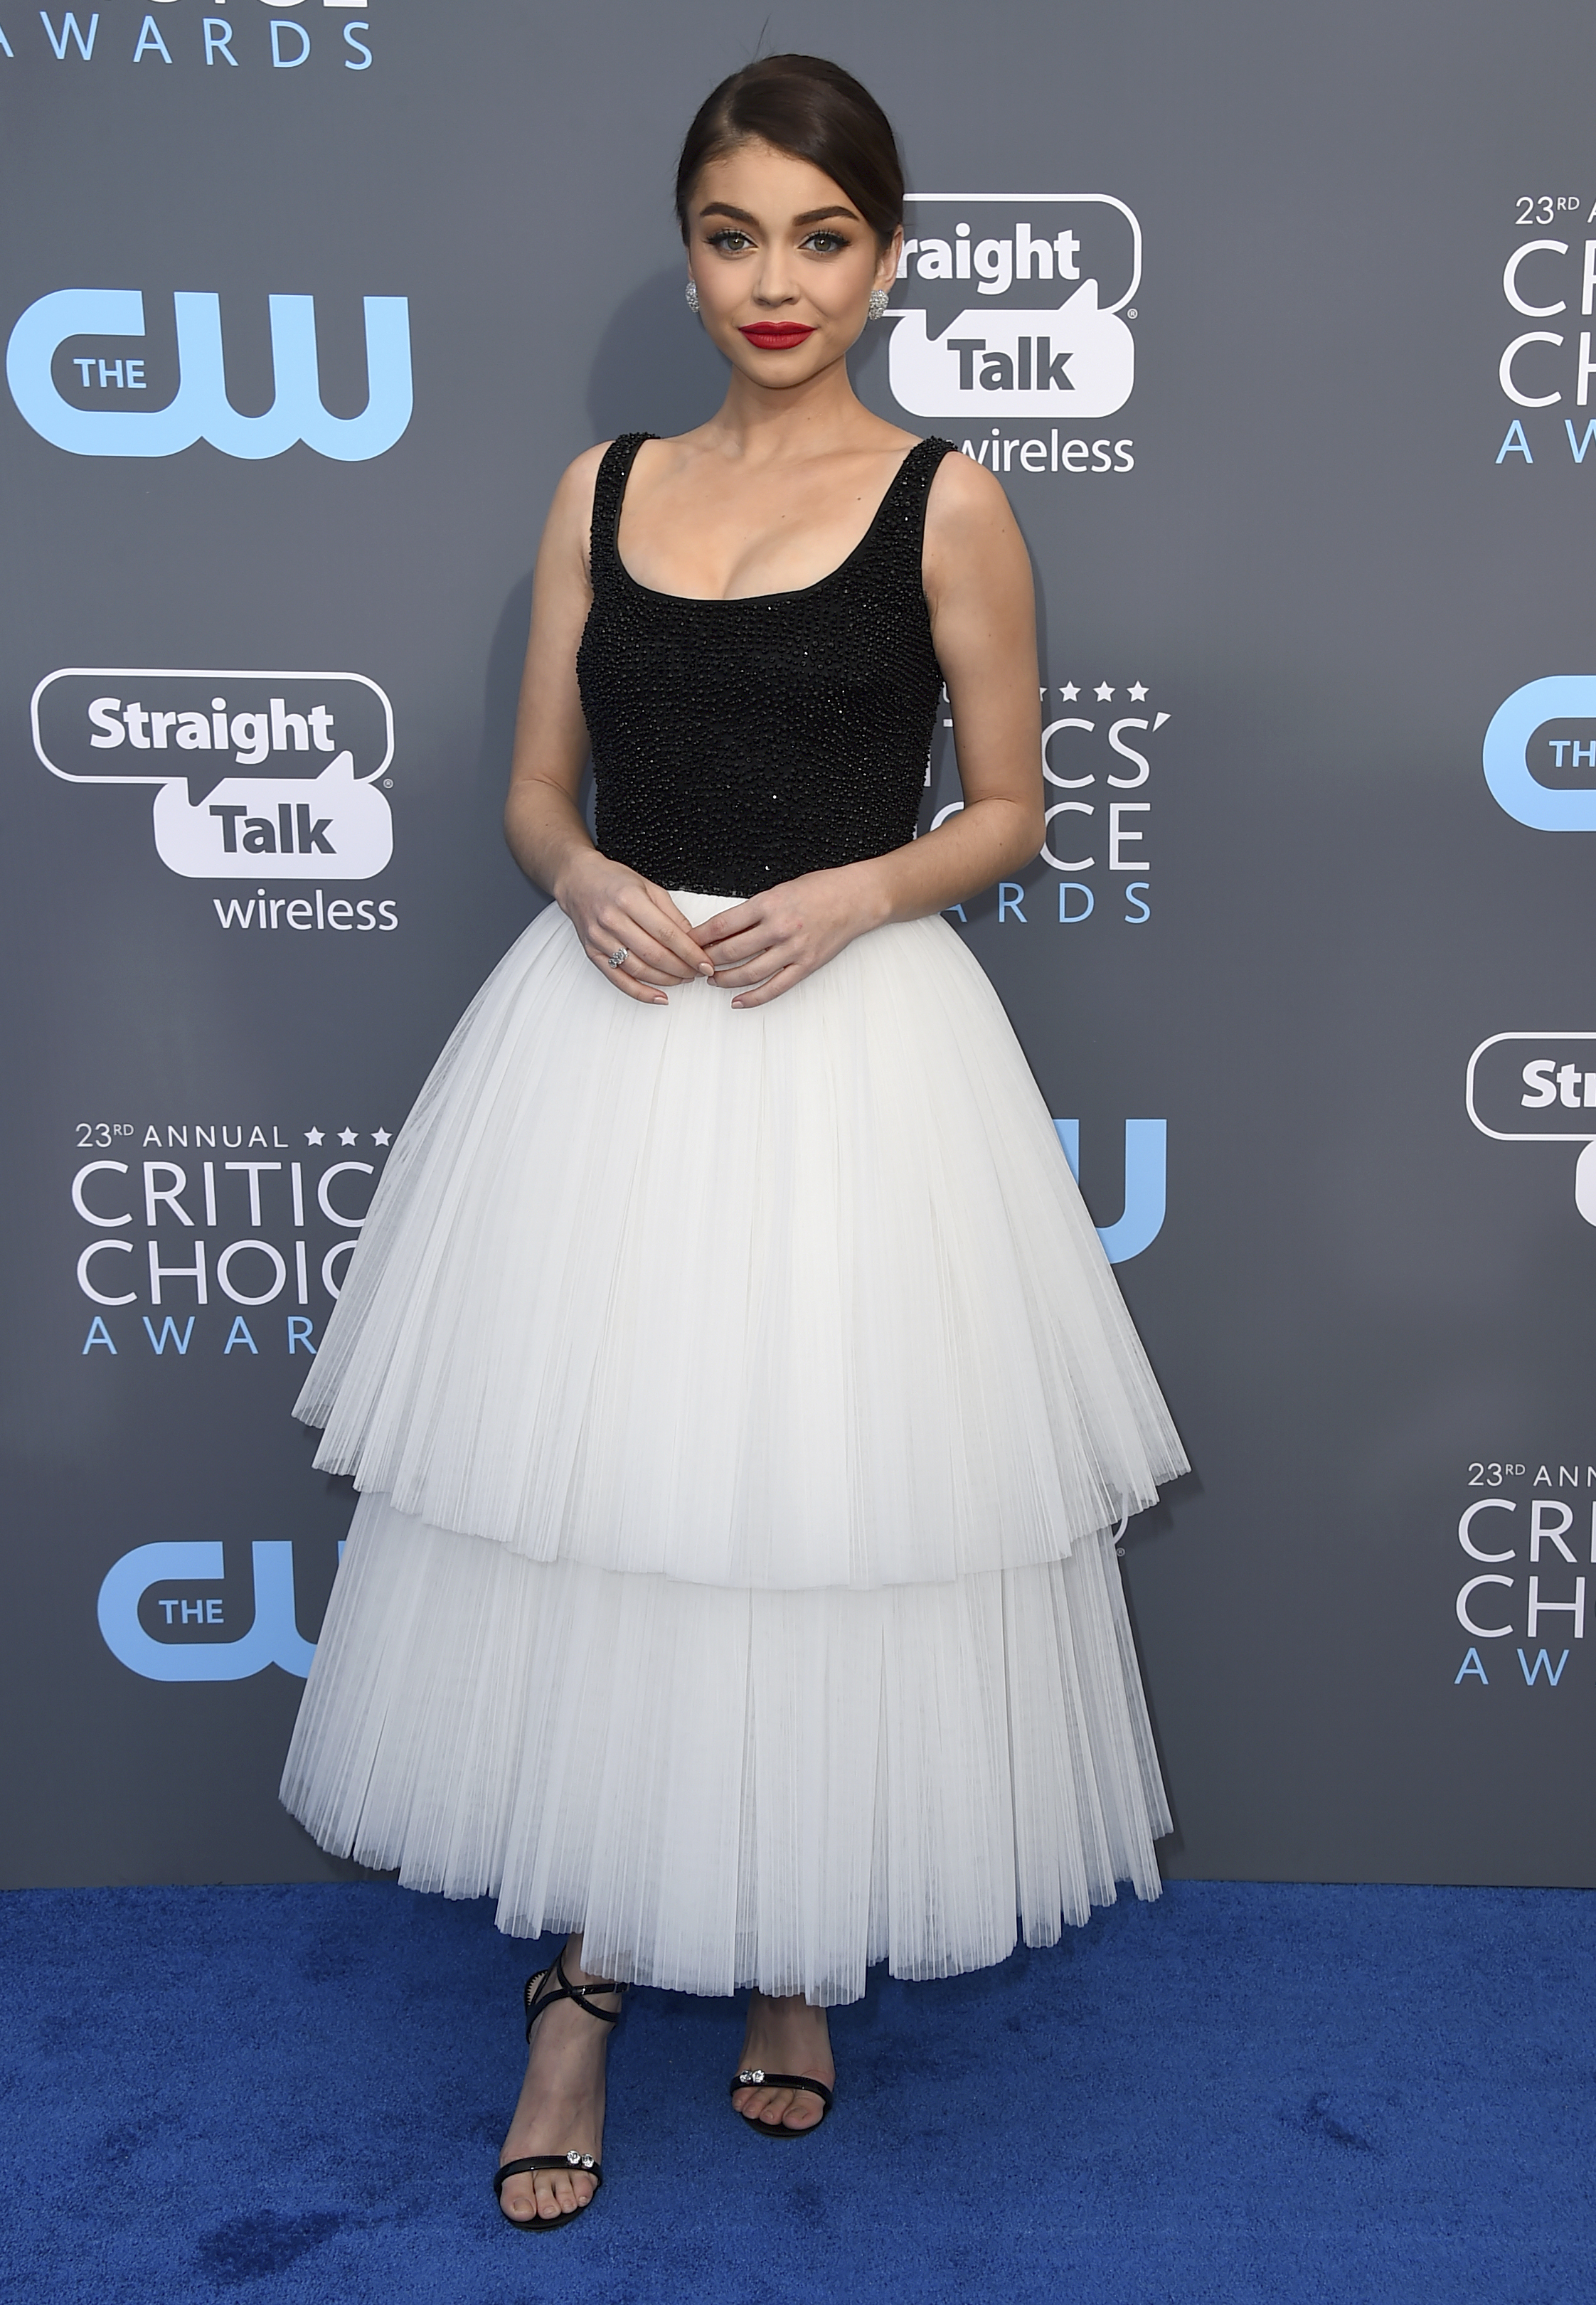 <div class='meta'><div class='origin-logo' data-origin='AP'></div><span class='caption-text' data-credit='Jordan Strauss/Invision/AP'>Sarah Hyland arrives at the 23rd annual Critics' Choice Awards at the Barker Hangar on Thursday, Jan. 11, 2018, in Santa Monica, Calif.</span></div>